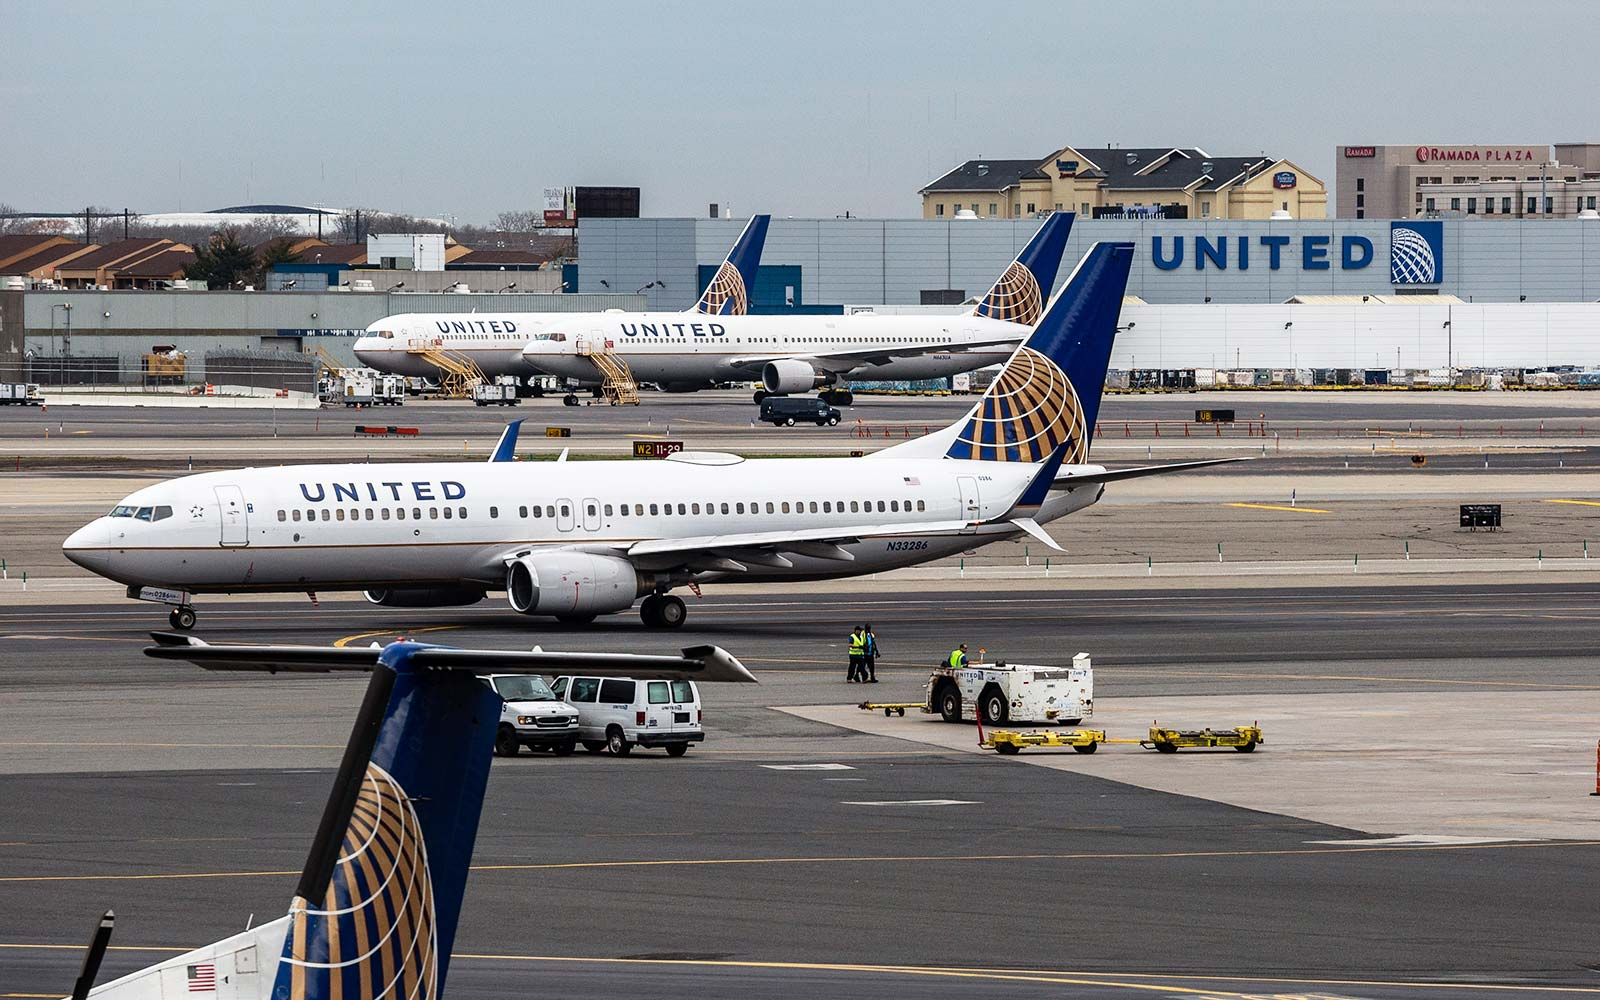 United Airlines: Police Reports Blame Passenger for Injuries